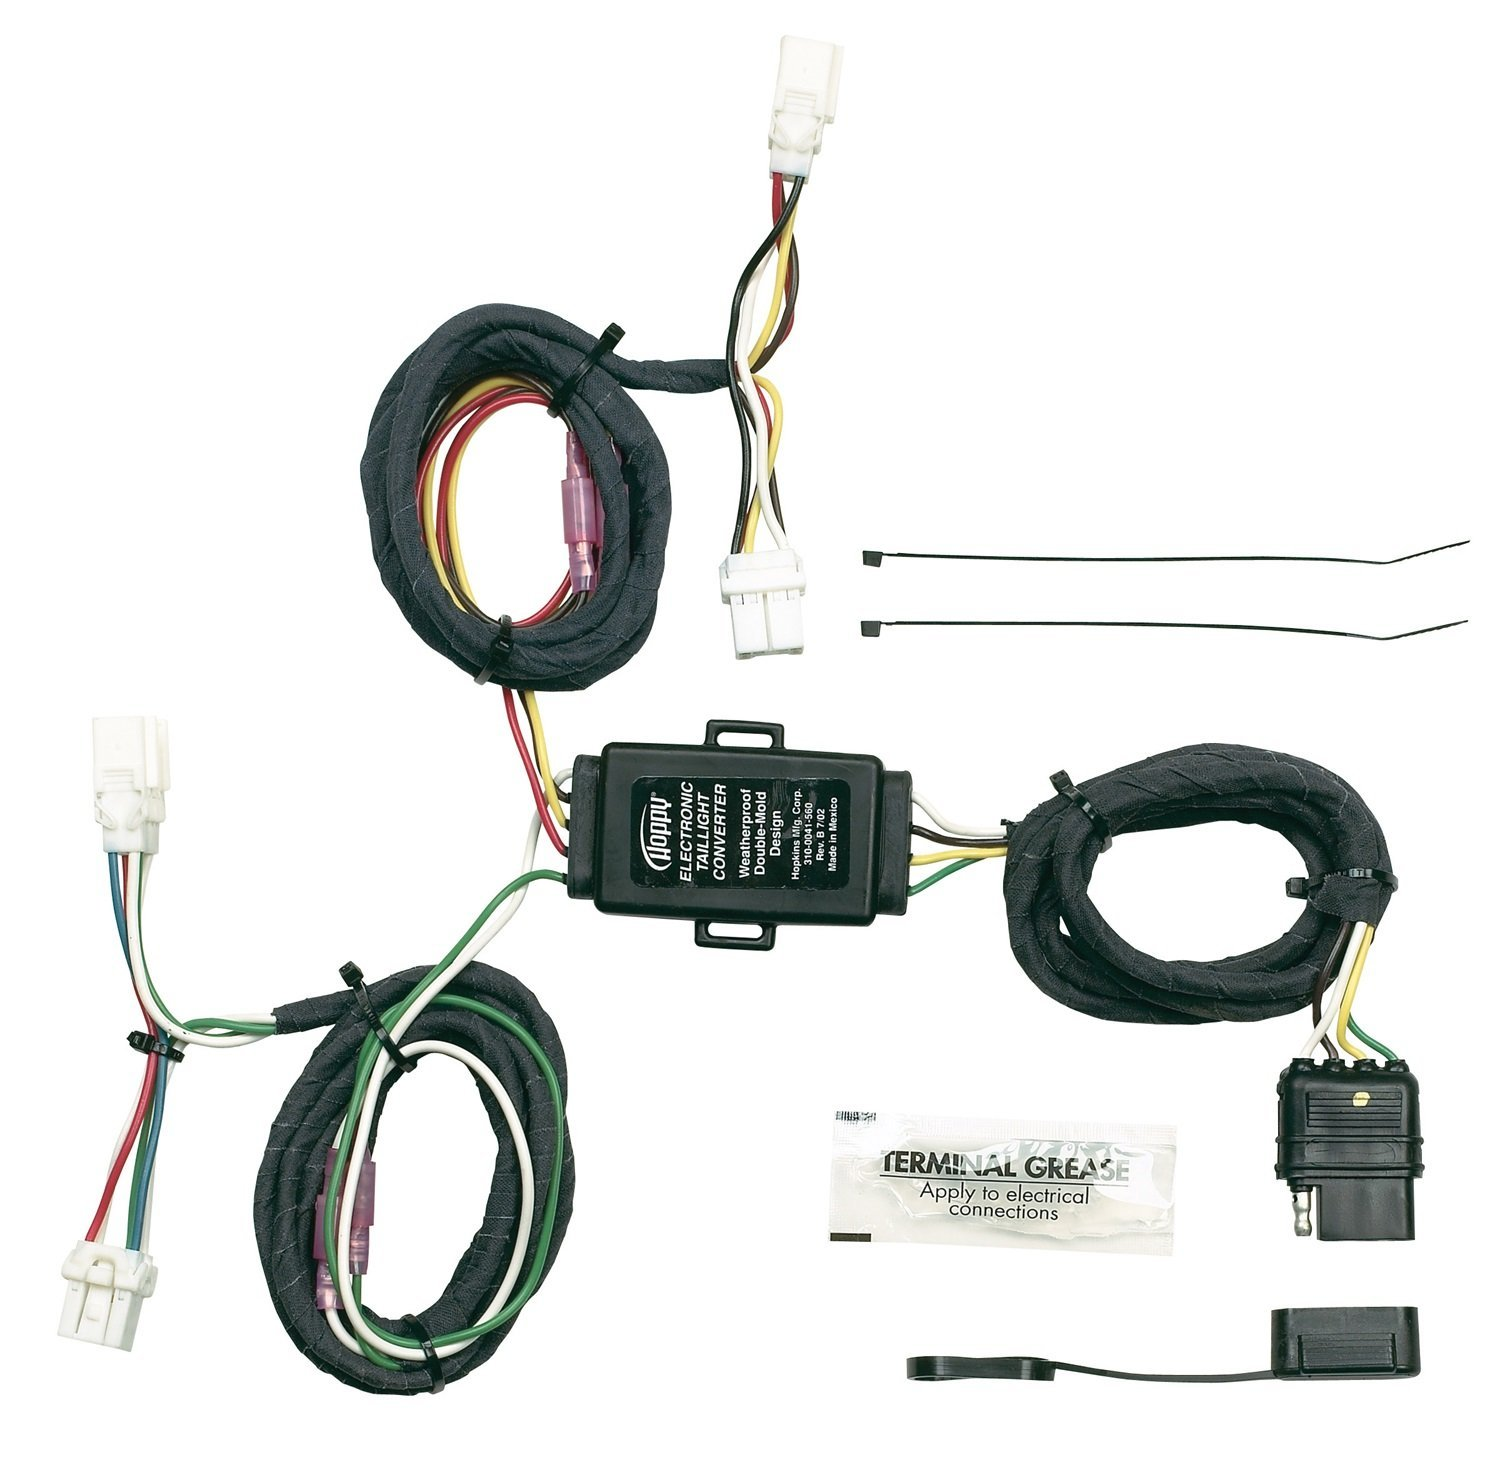 hight resolution of hopkins 43565 plug in simple vehicle wiring kit t connectors allow you to